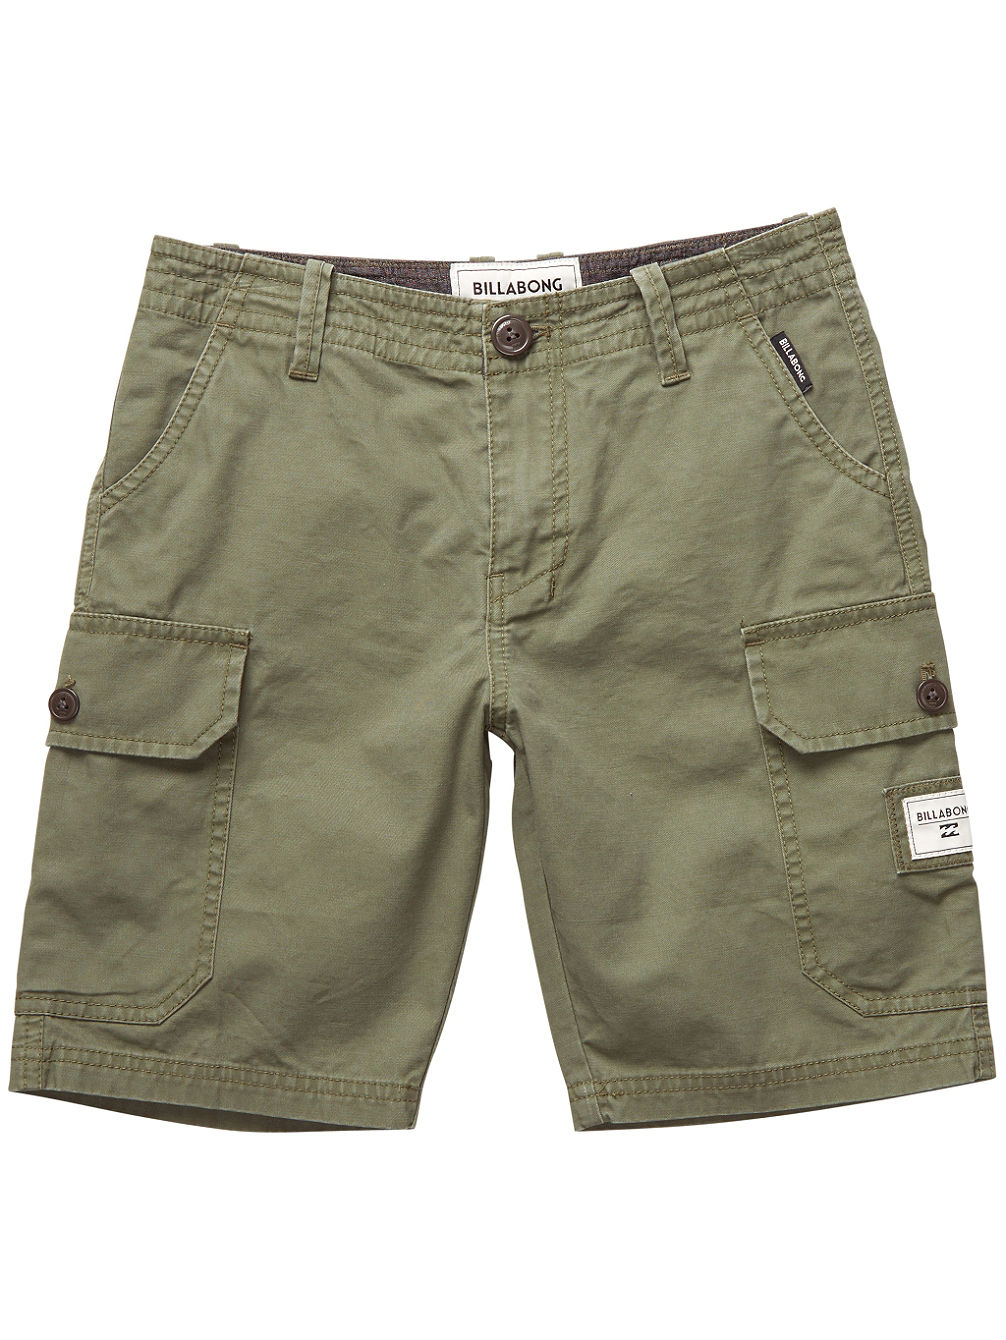 buy billabong all day cargo shorts boys online at blue. Black Bedroom Furniture Sets. Home Design Ideas